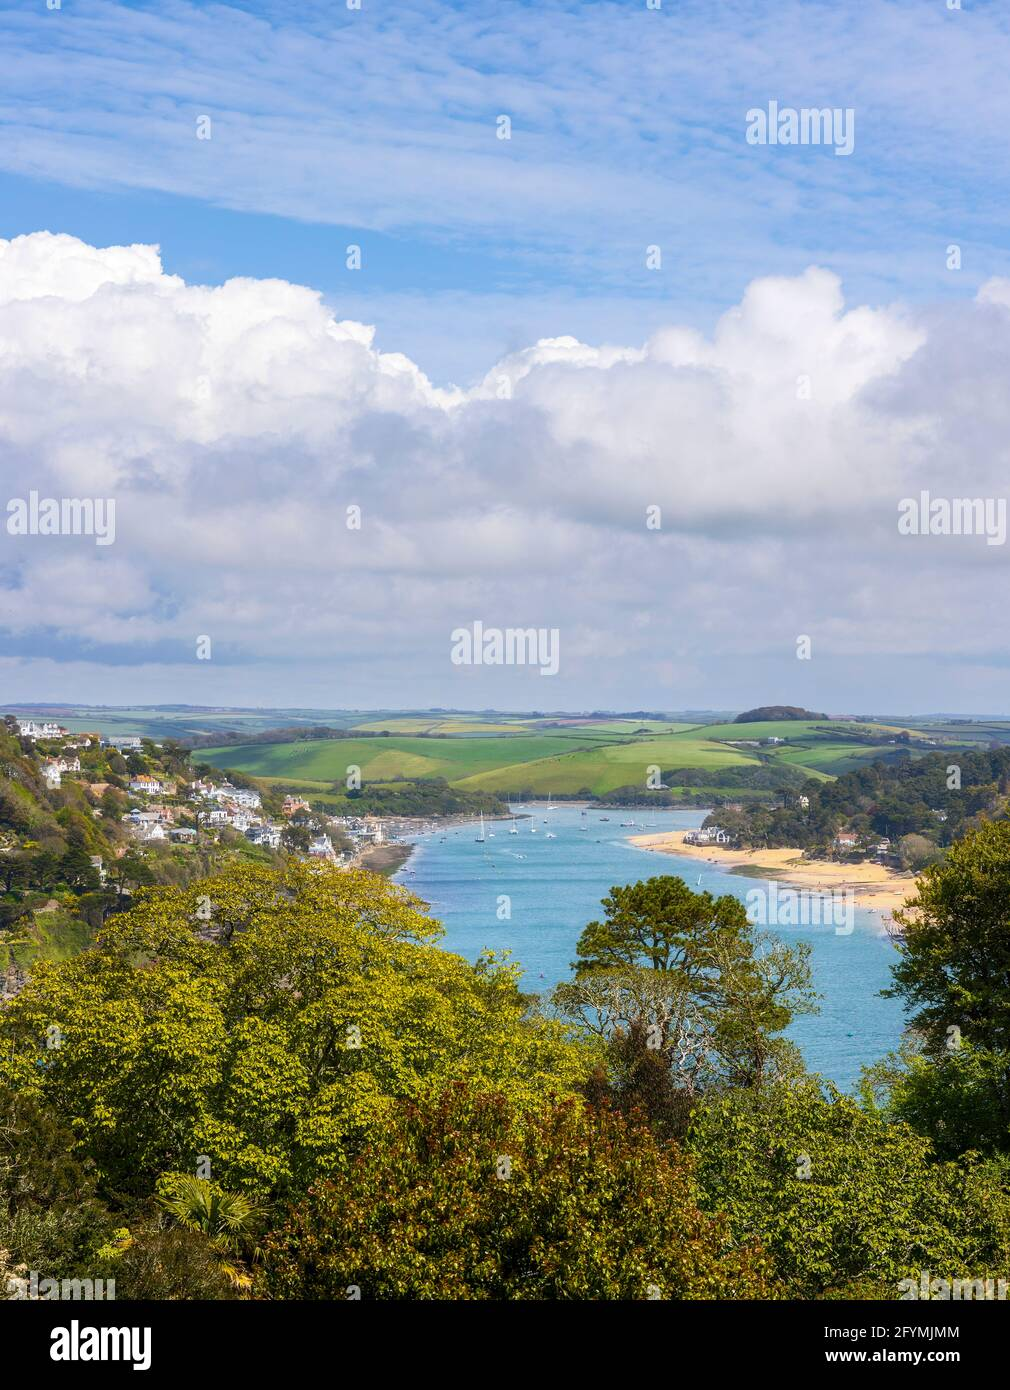 High view of Salcombe Harbour, Salcombe town and the stunning Devon countryside. Stock Photo